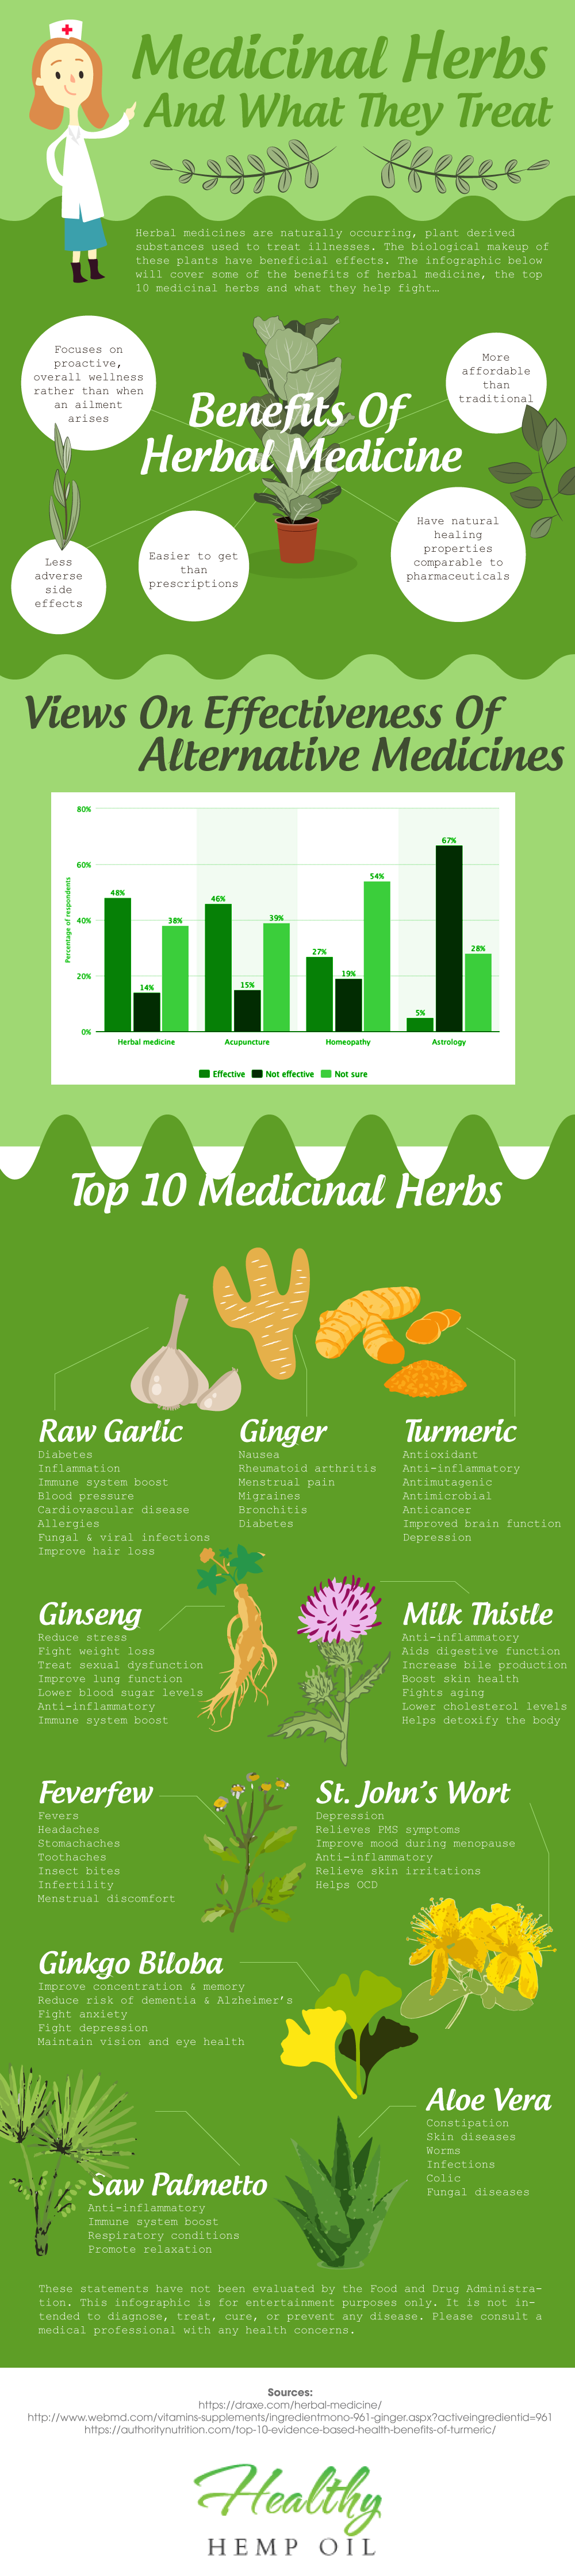 Top 10 Medicinal Herbs... And What They Treat